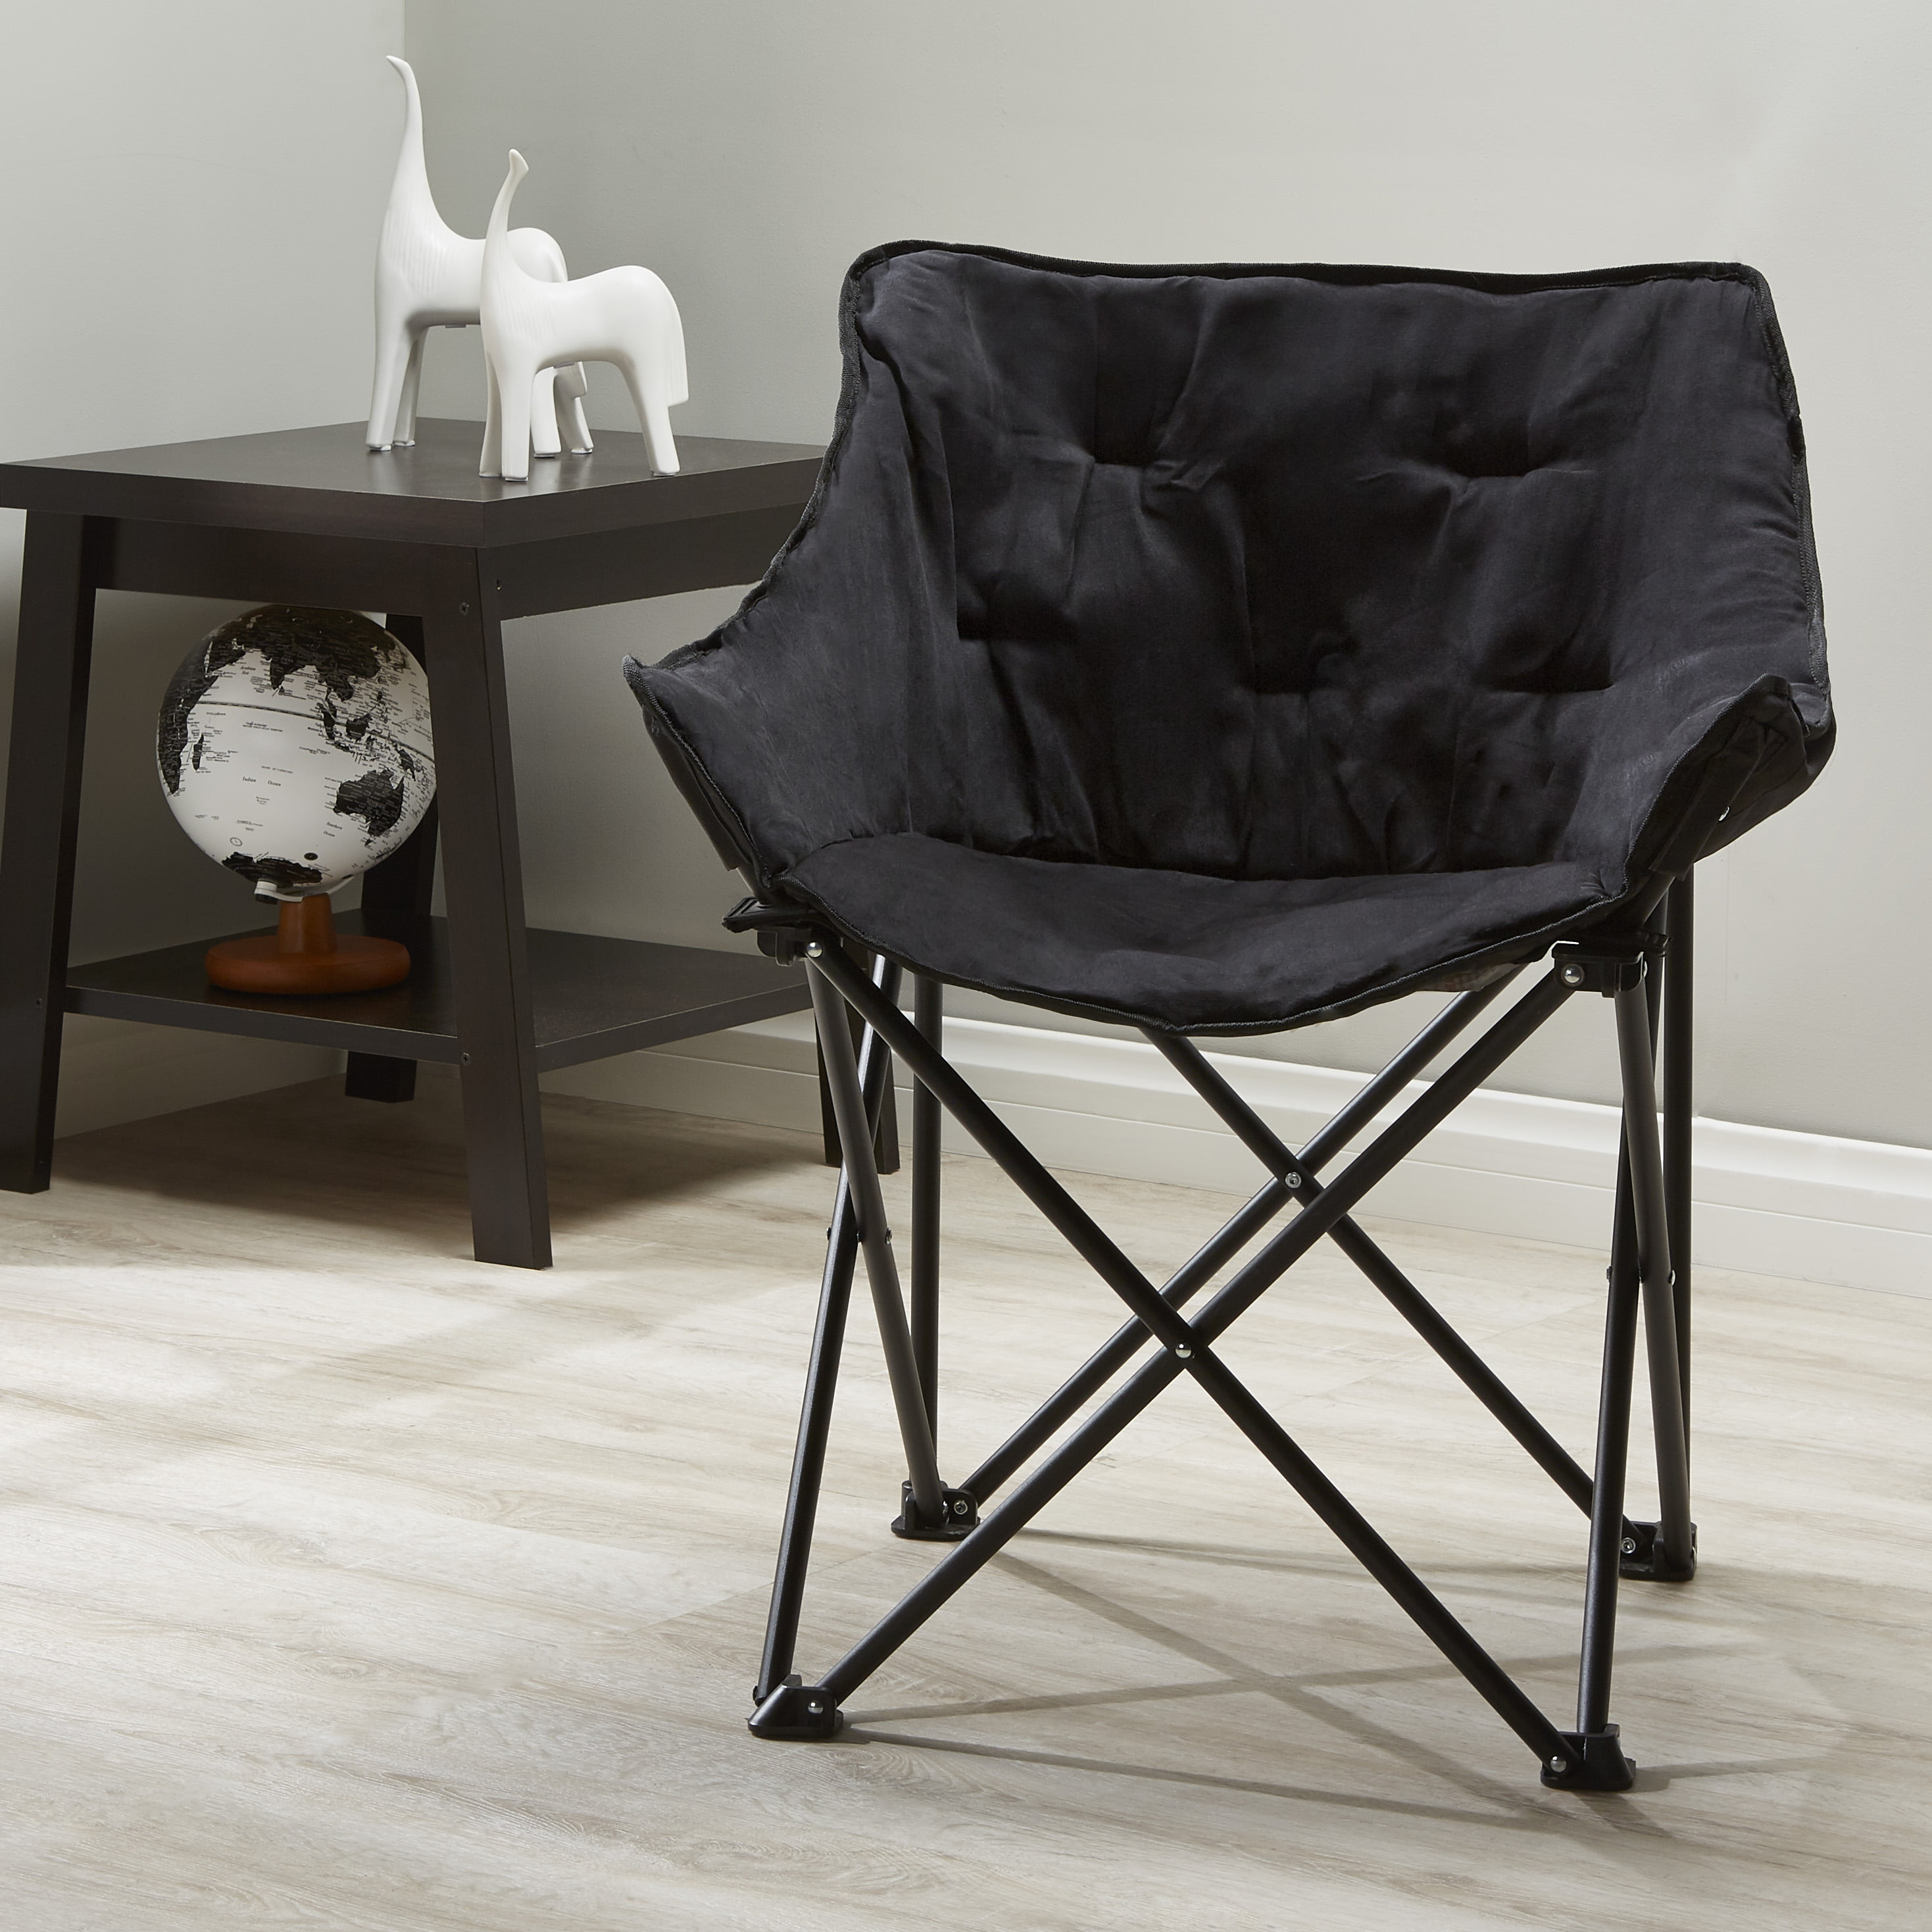 Mainstays Collapsible Square Chair, Black Microsuede - Walmart.com